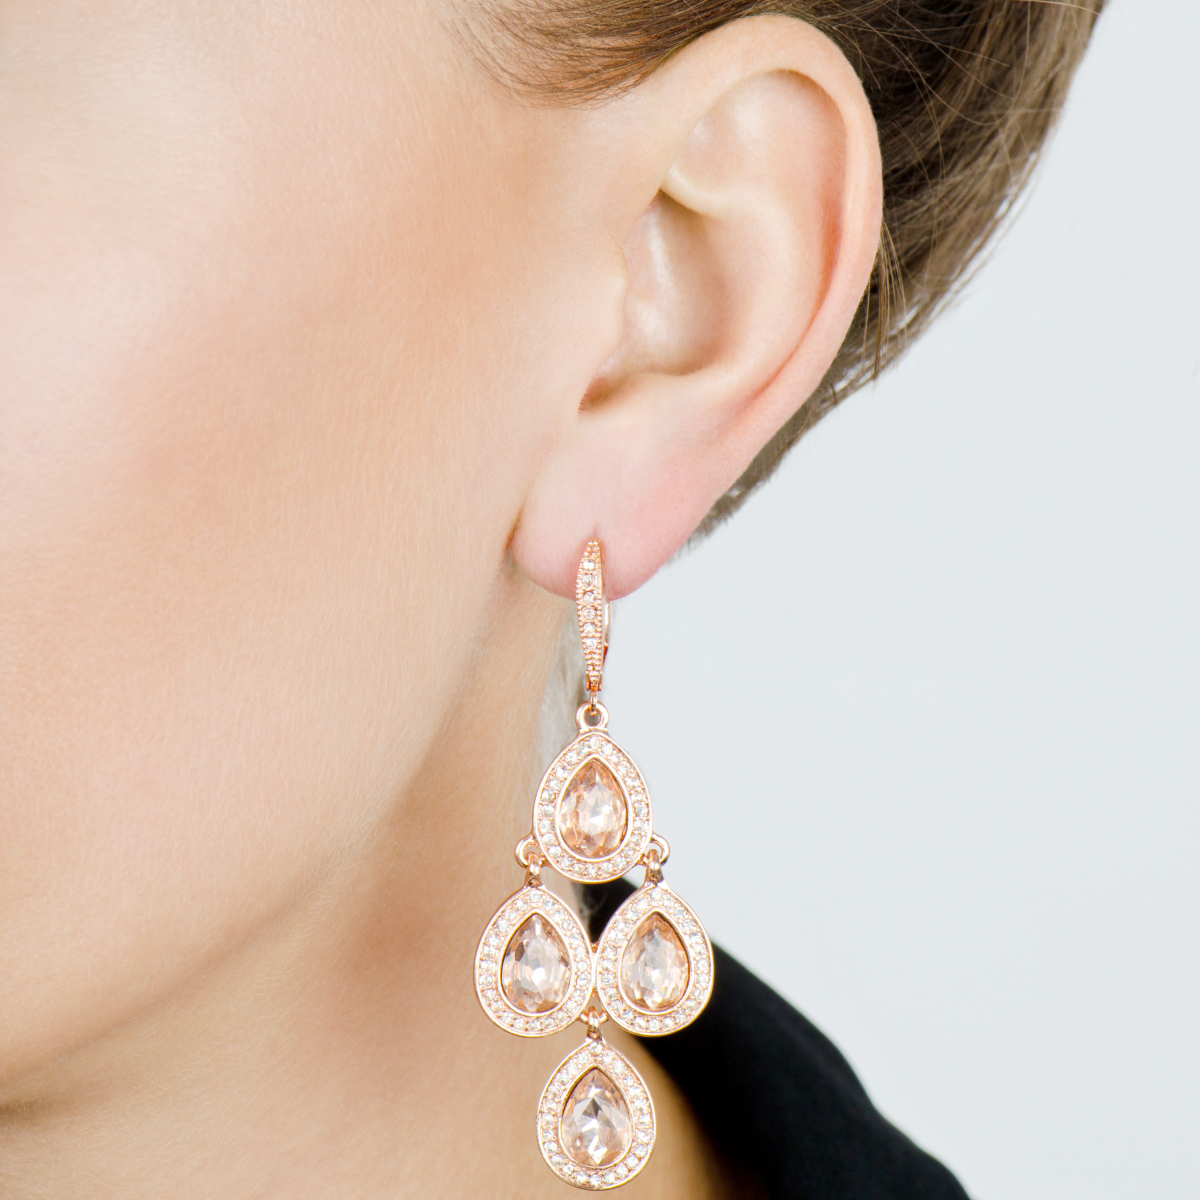 Rose Goldtone Pink Rhinestone Chandelier Earrings – Gold Tone Chandelier Earrings